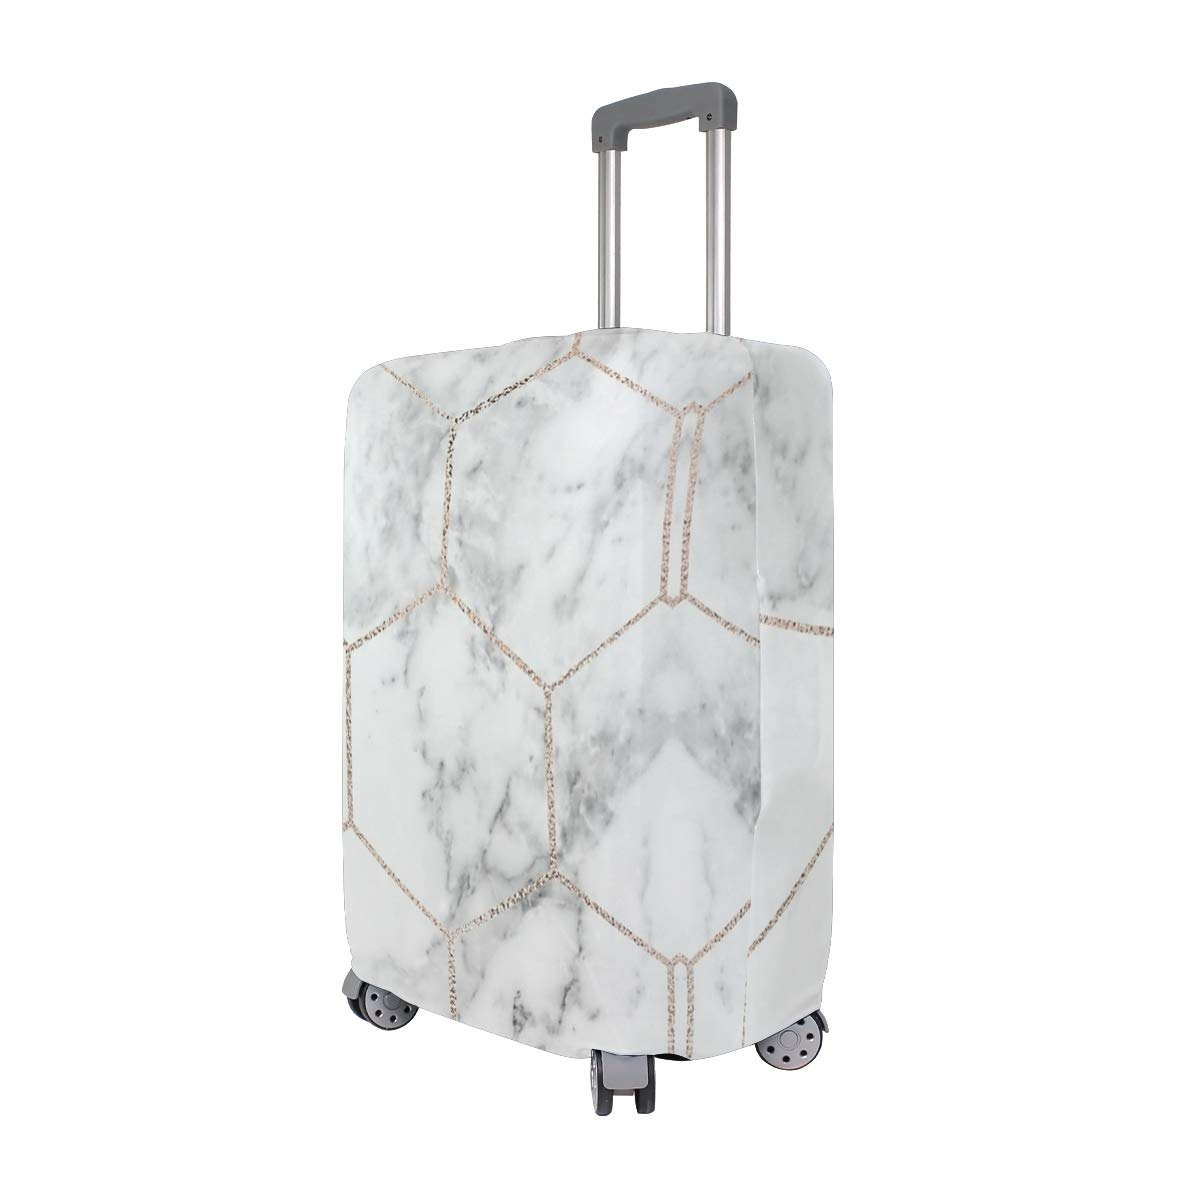 Honeycomb Rose Gold Marble Traveler Lightweight Rotating Luggage Cover Can Carry With You Can Expand Travel Bag Trolley Rolling Luggage Cover